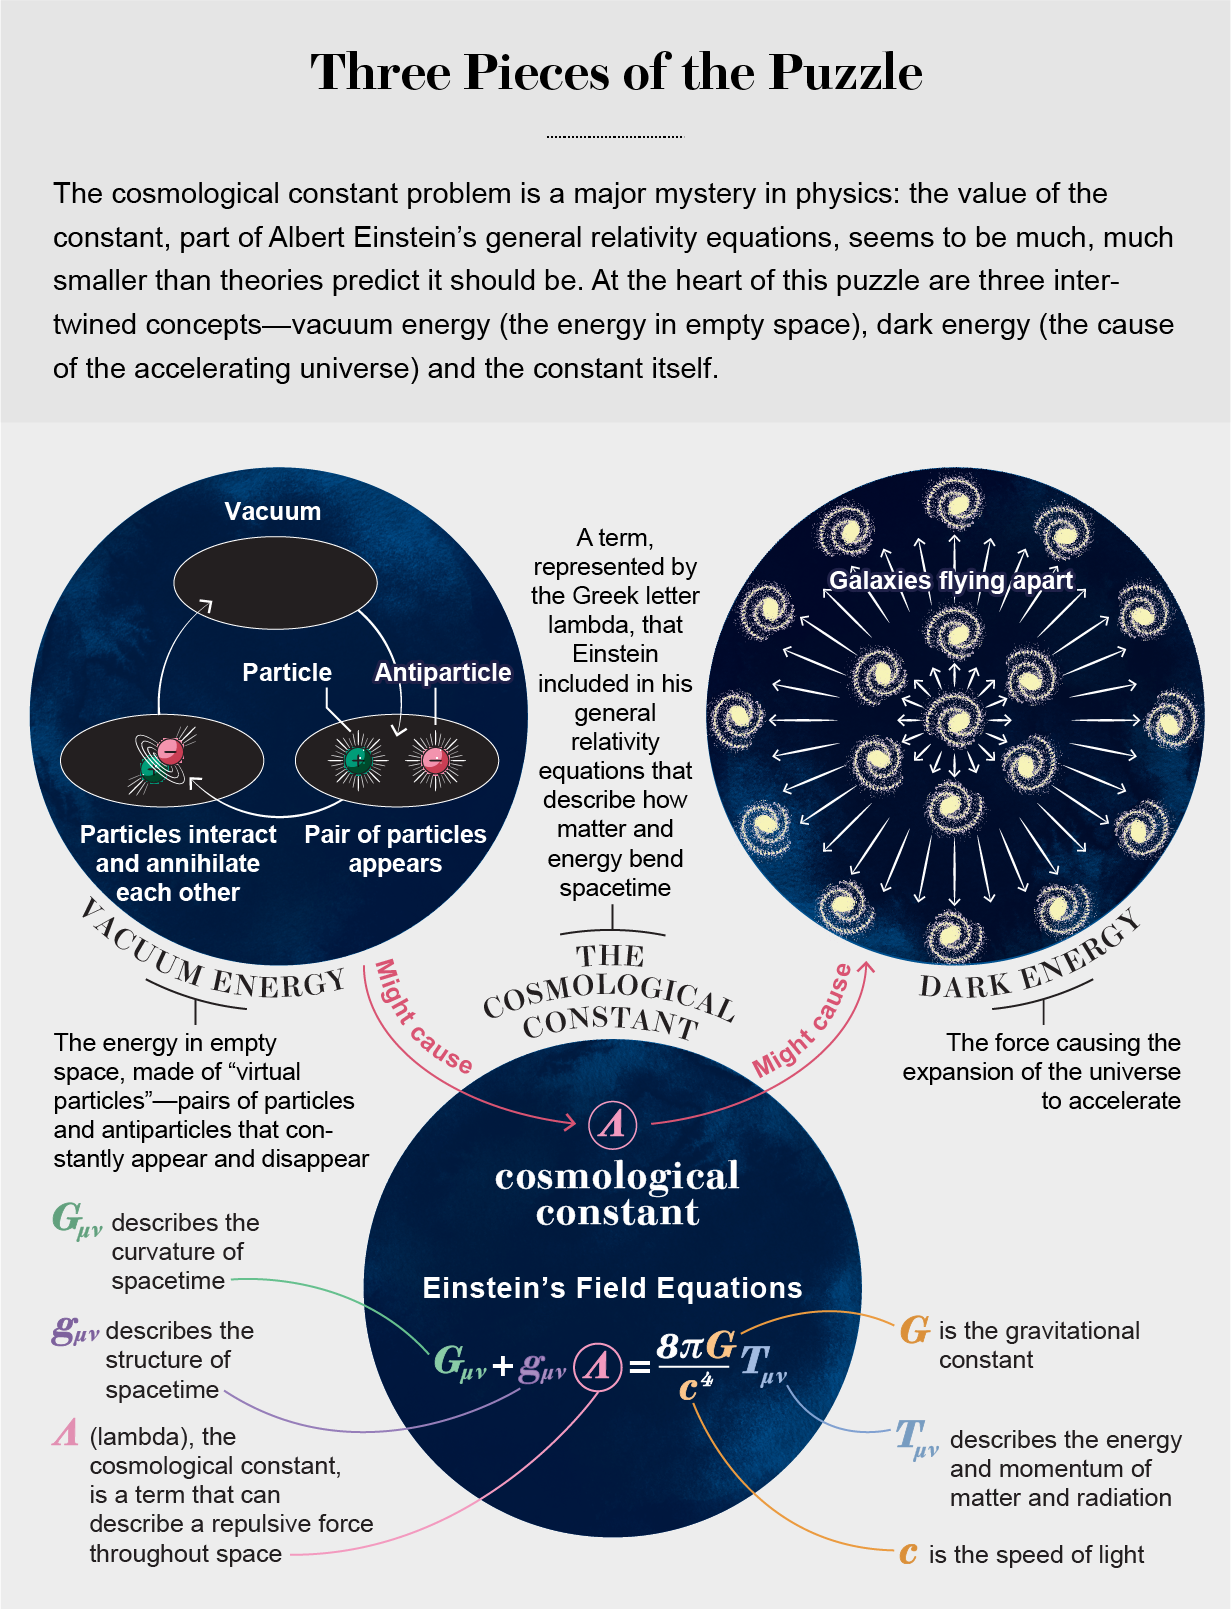 Diagram breaks down Einstein's field equations & shows relation among vacuum energy, dark energy & the cosmological constant.